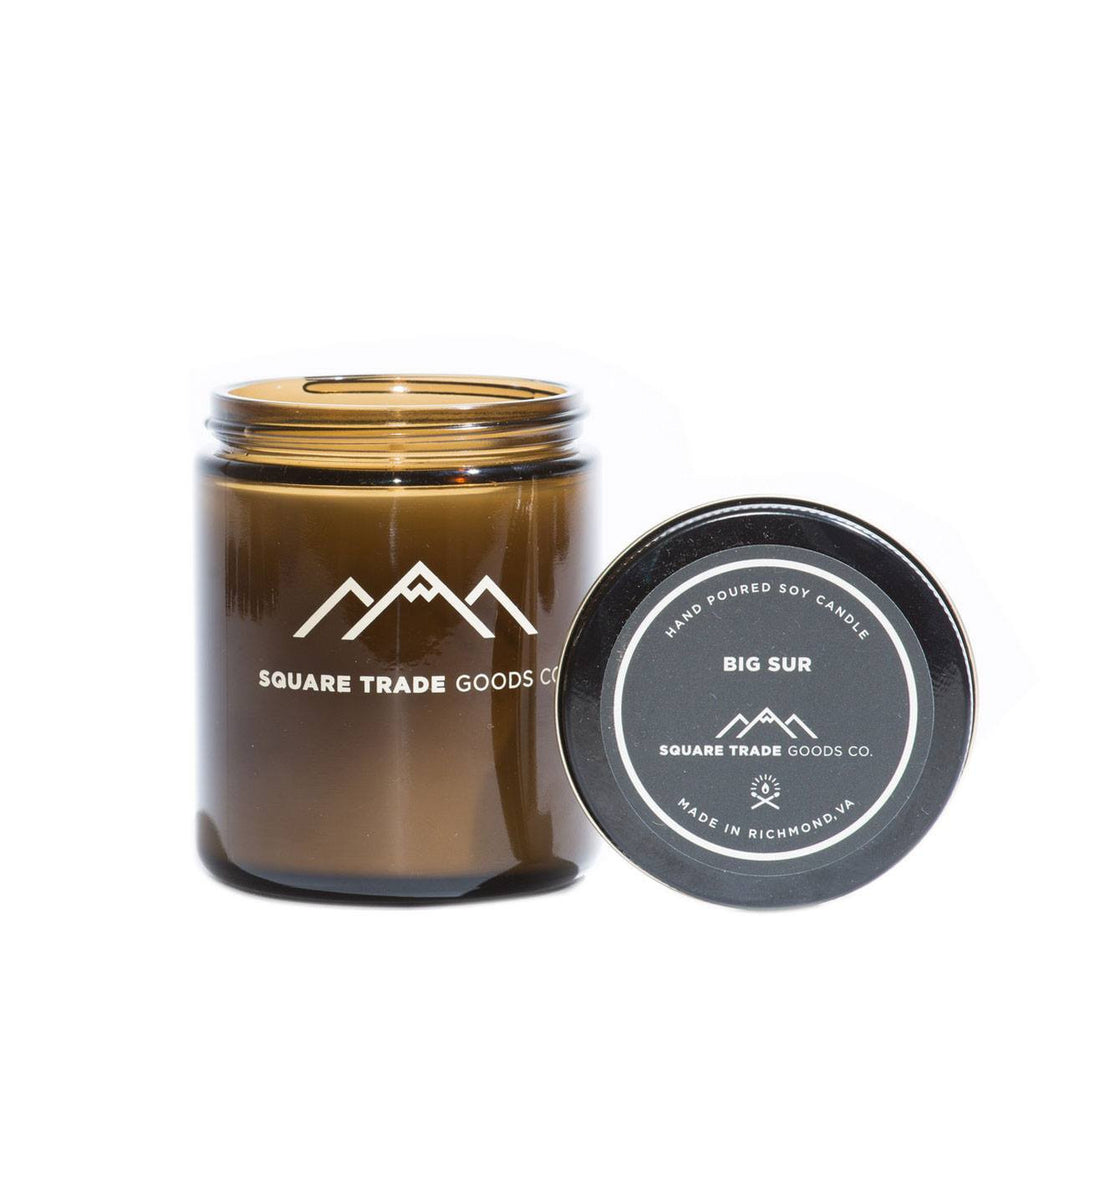 Square Trade Goods Candle - Big Sur - Home Essentials - Iron and Resin